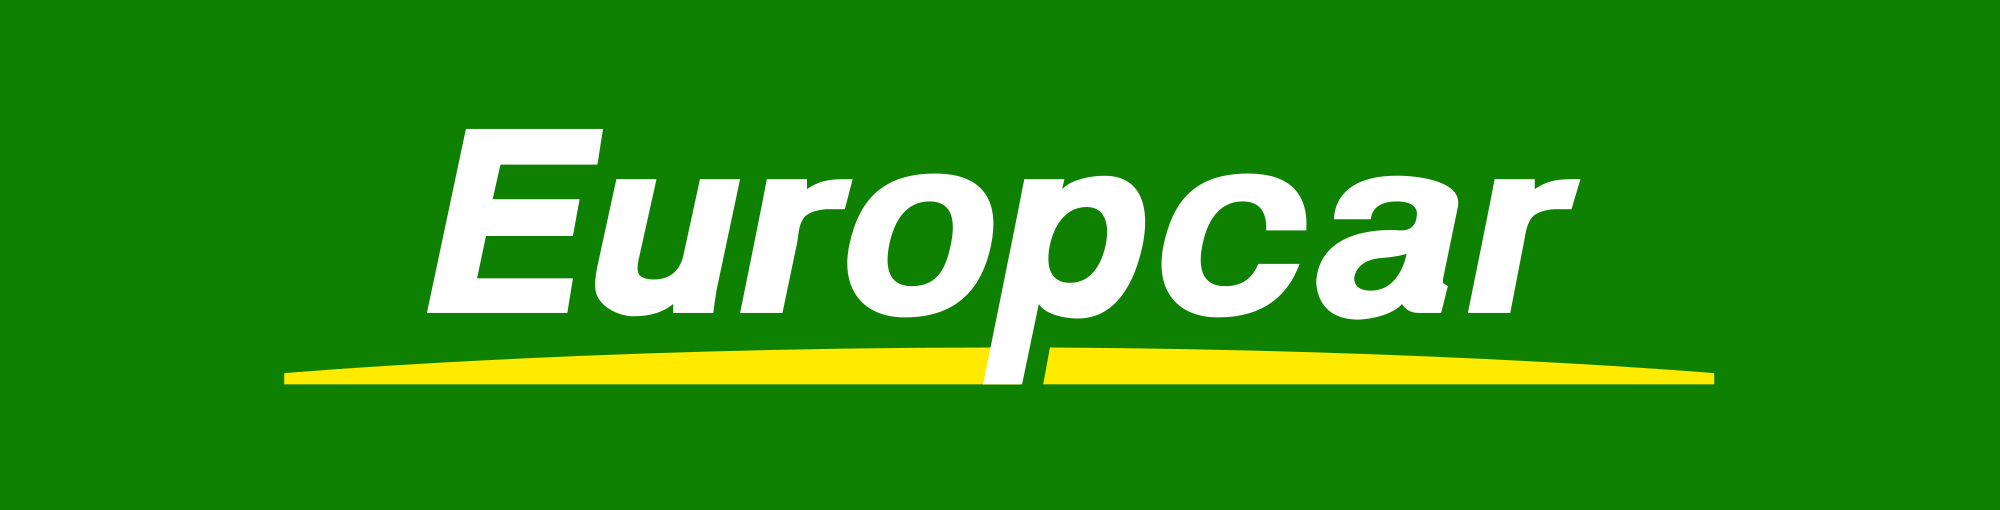 Europcar employee car rental logo